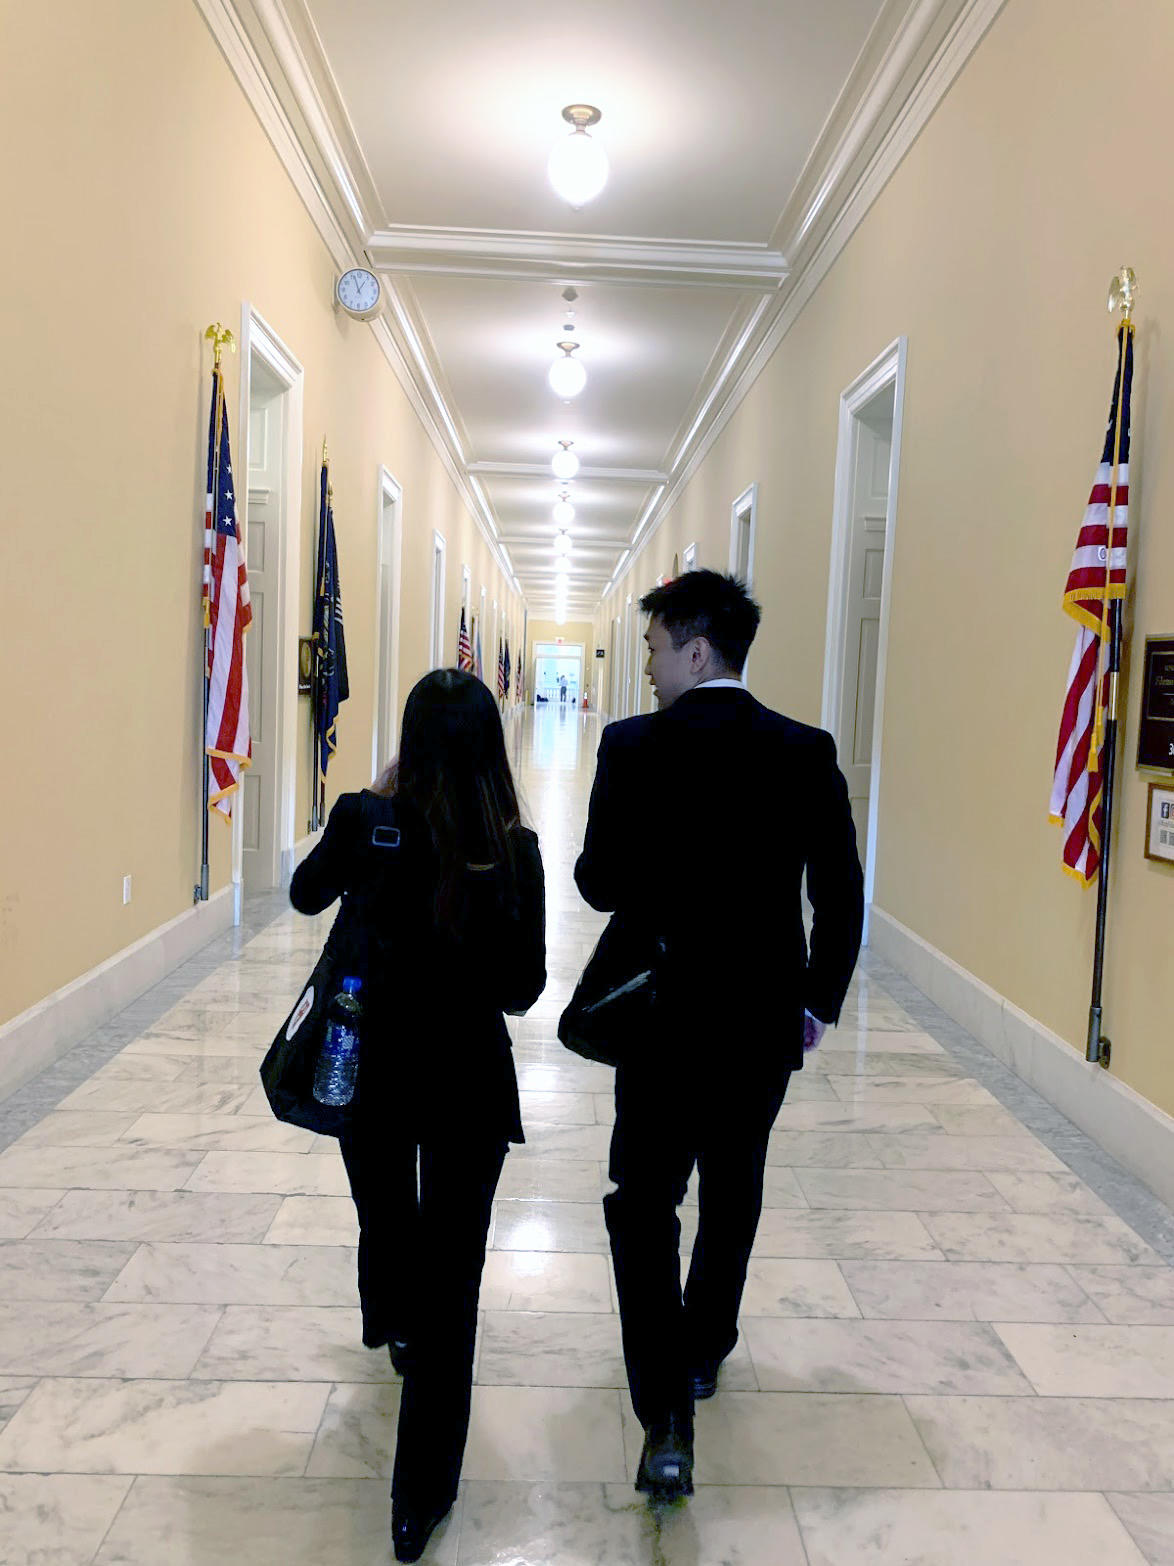 Both in black suits, Stephanie and Eugene walk away from the camera, down a hallway with white marble floors, soft yellow walls, and American flags stationed against the walls.